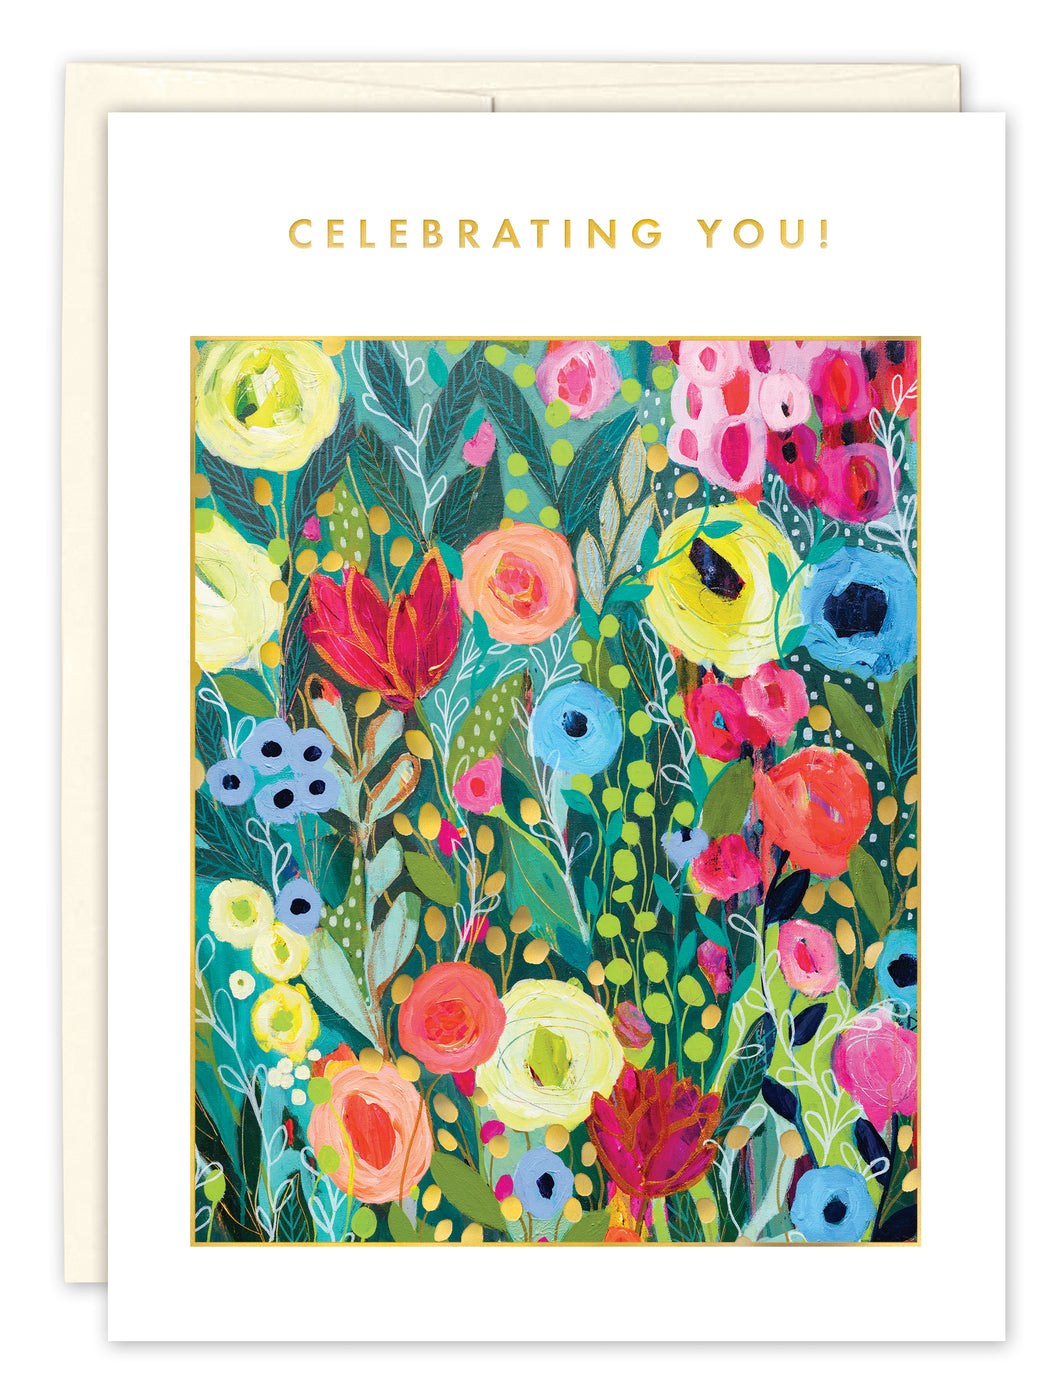 Birthday Card: CELEBRATING YOU!